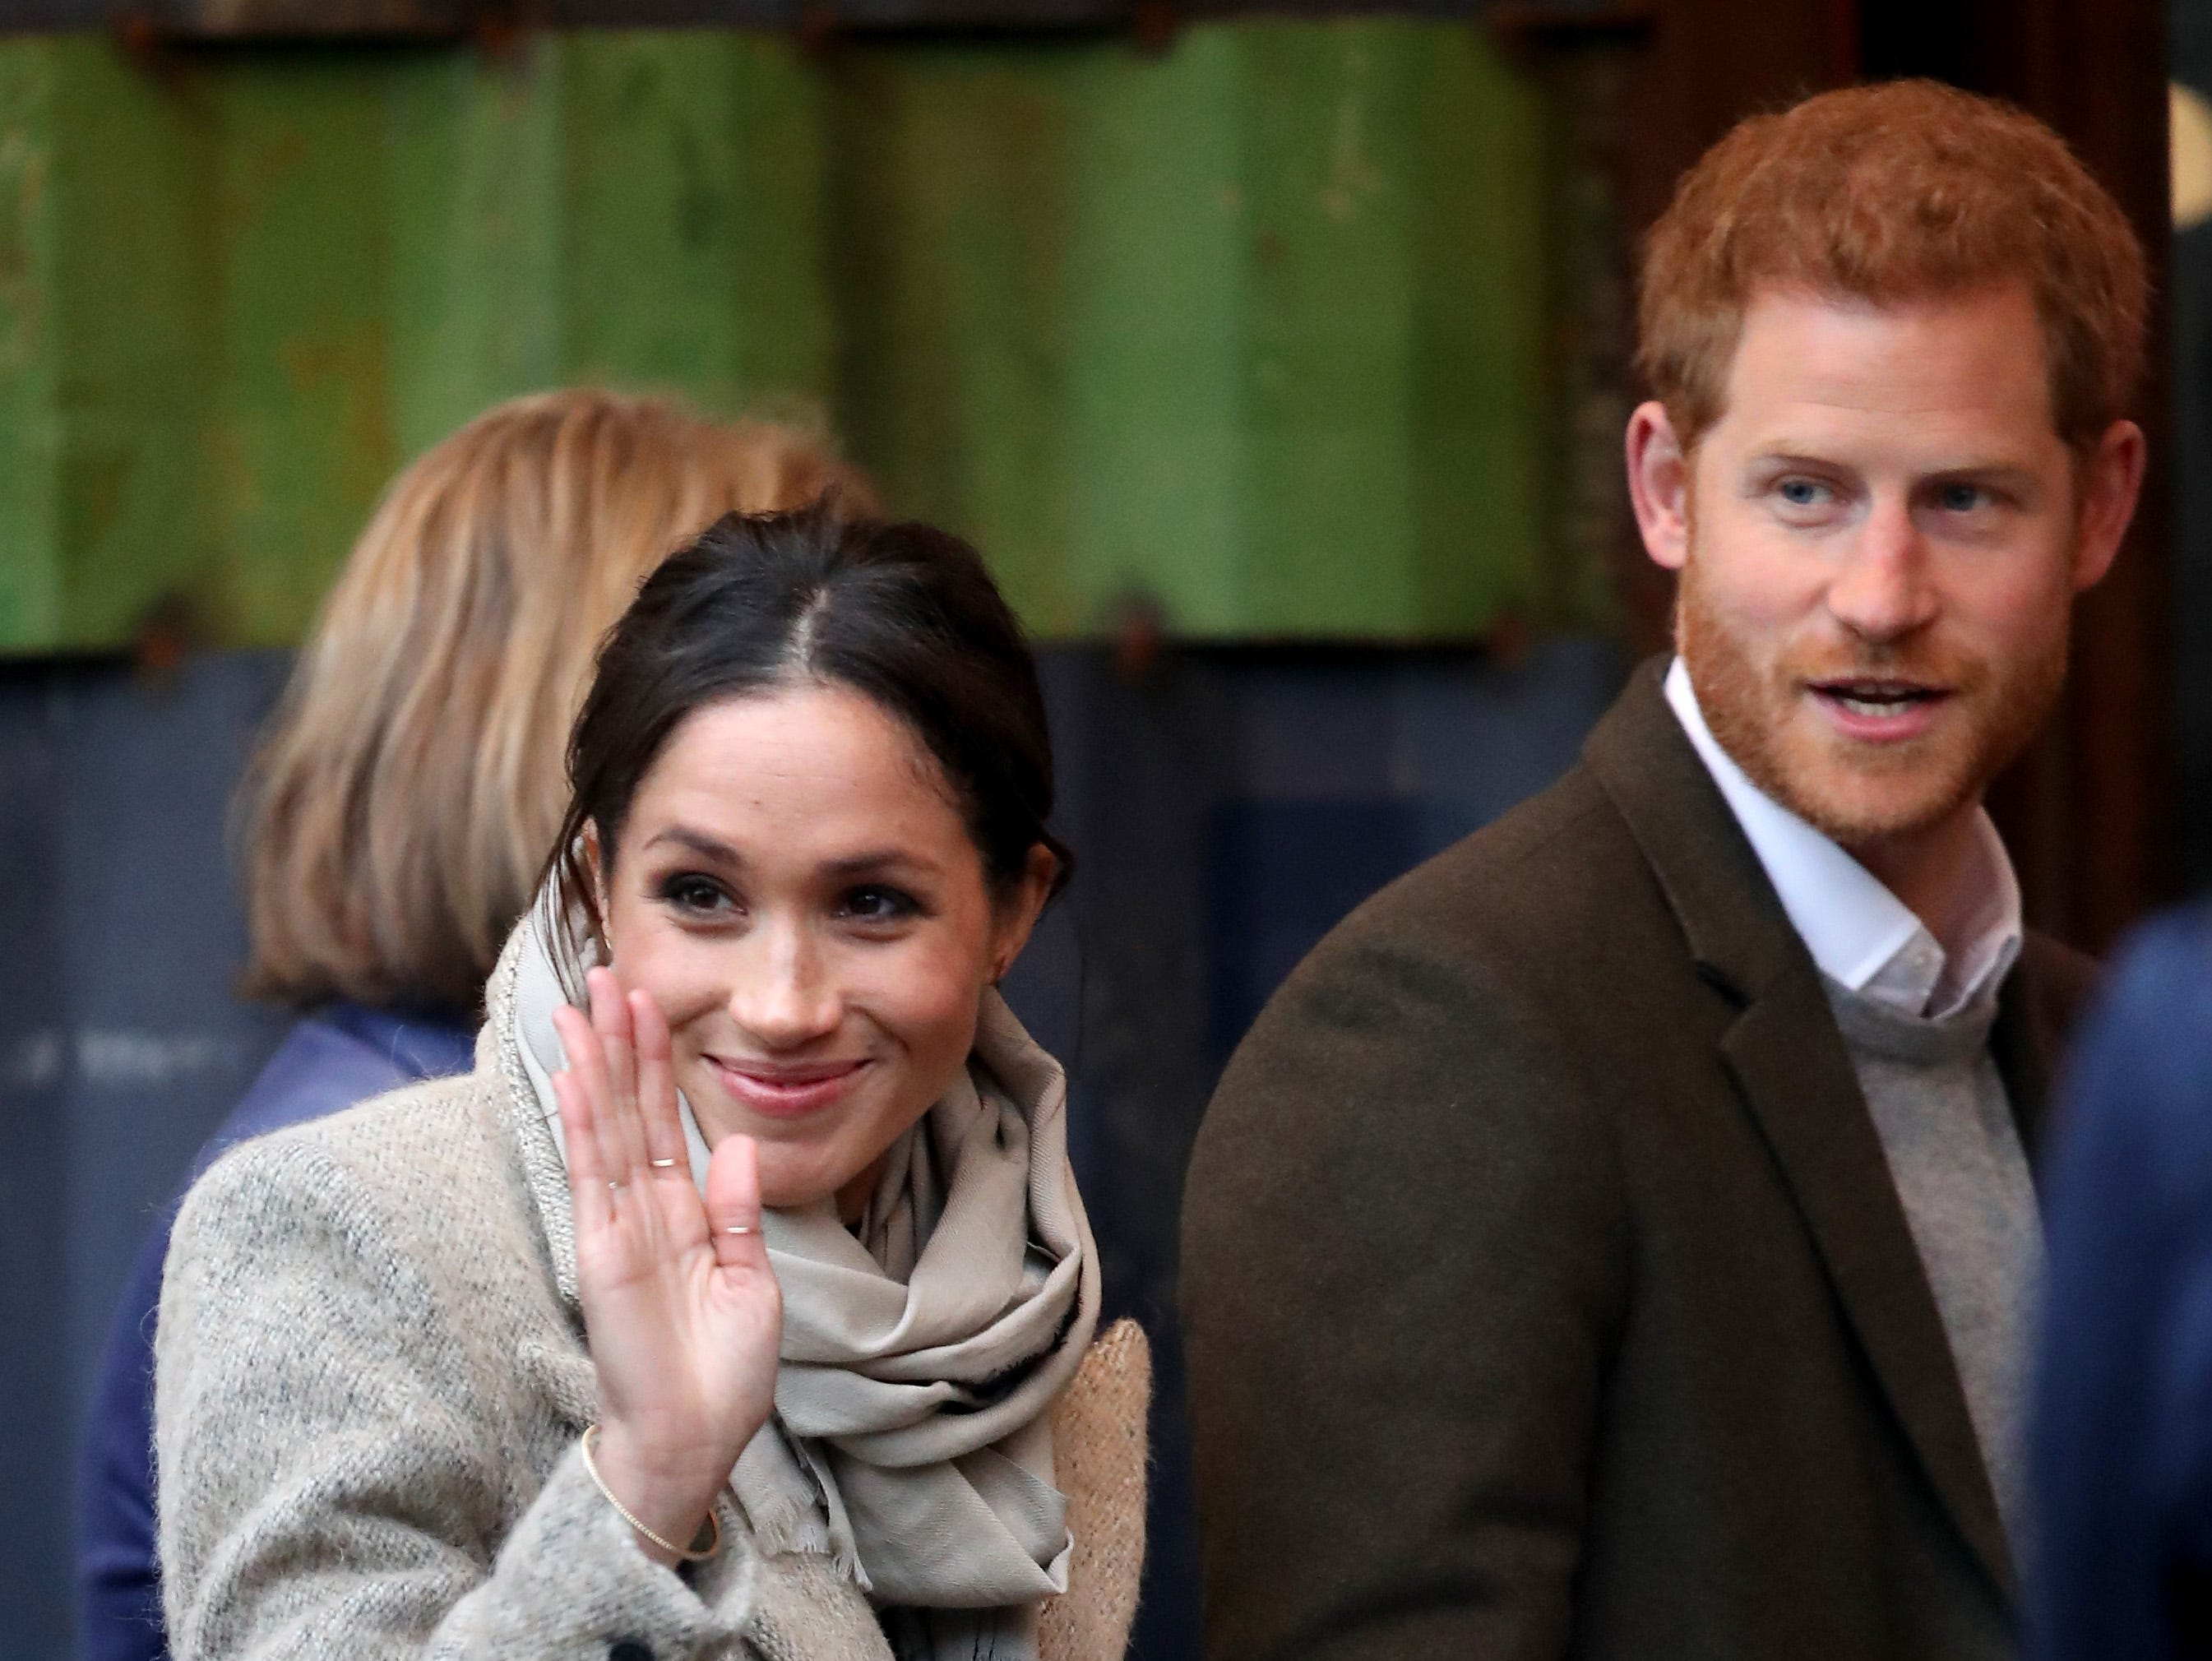 Jan. 9: Prince Harry and then-fiancee Meghan Markle visit a radio station in London.